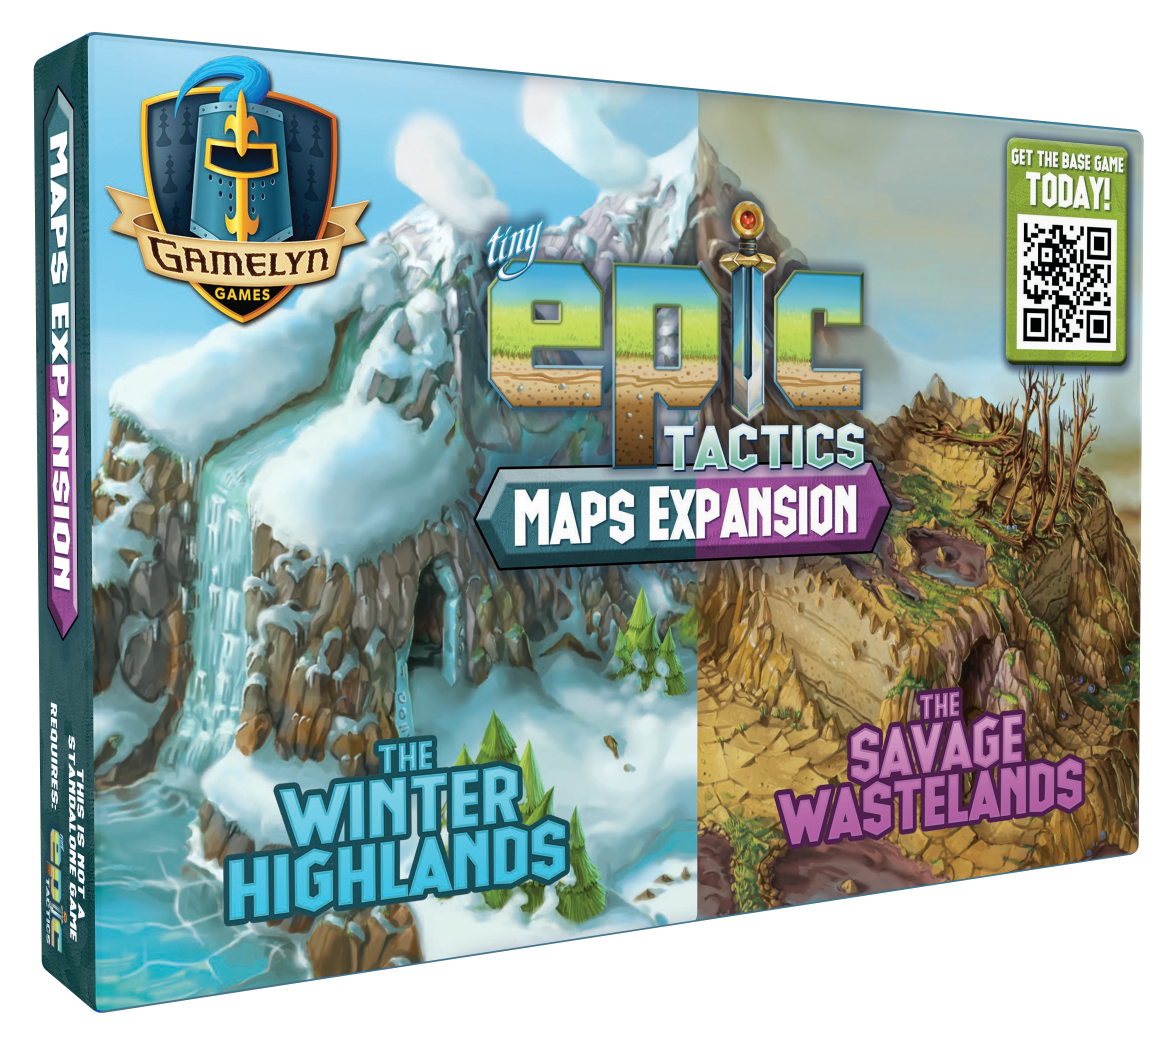 Tiny Epic Tactics Maps Expansion — Gamelyn Games Maps Com Games on mmo maps, epic d d maps, metro bus houston tx maps, cool site maps, interesting maps, snes maps, dragon warrior monsters 2 maps, google maps, dvd maps, all the locations of the death camp maps, prank maps, fictional maps, jrpg maps, all of westeros maps, bully scholarship edition cheats maps, made up maps, cartography maps, simple risk maps, fishing maps, house maps,